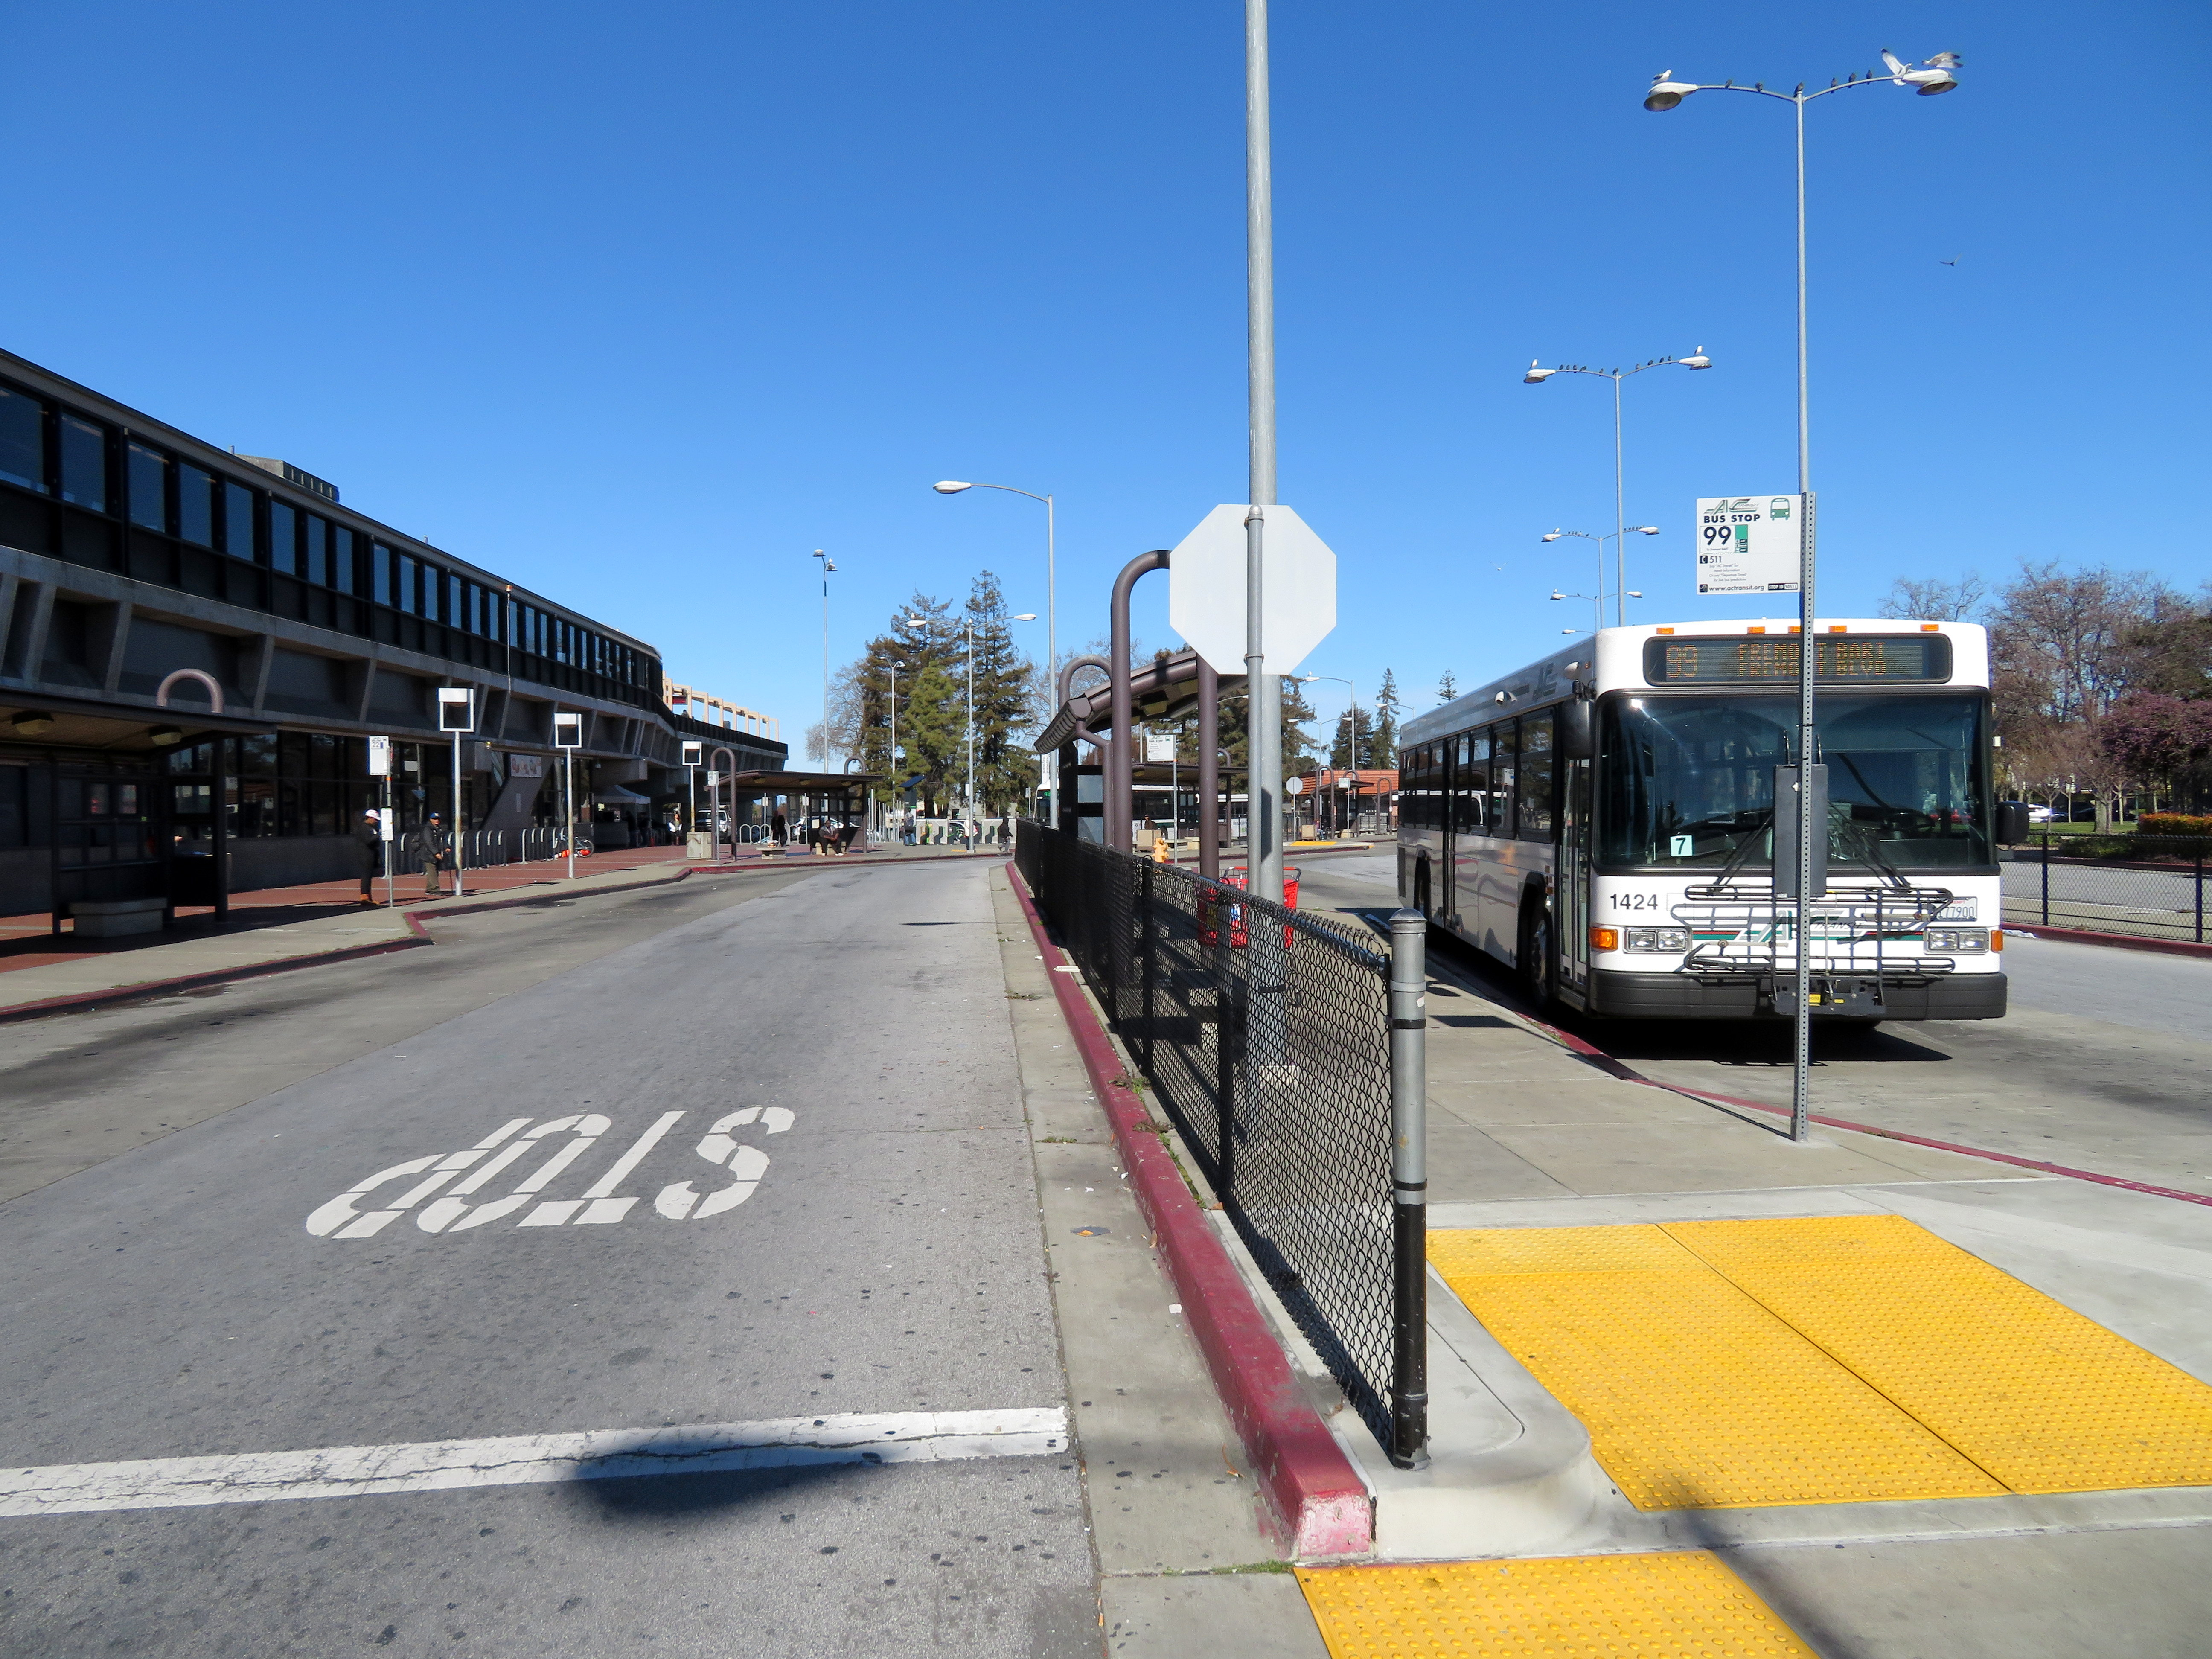 FileAC Transit Route 99 Bus At Hayward Station March 2018JPG